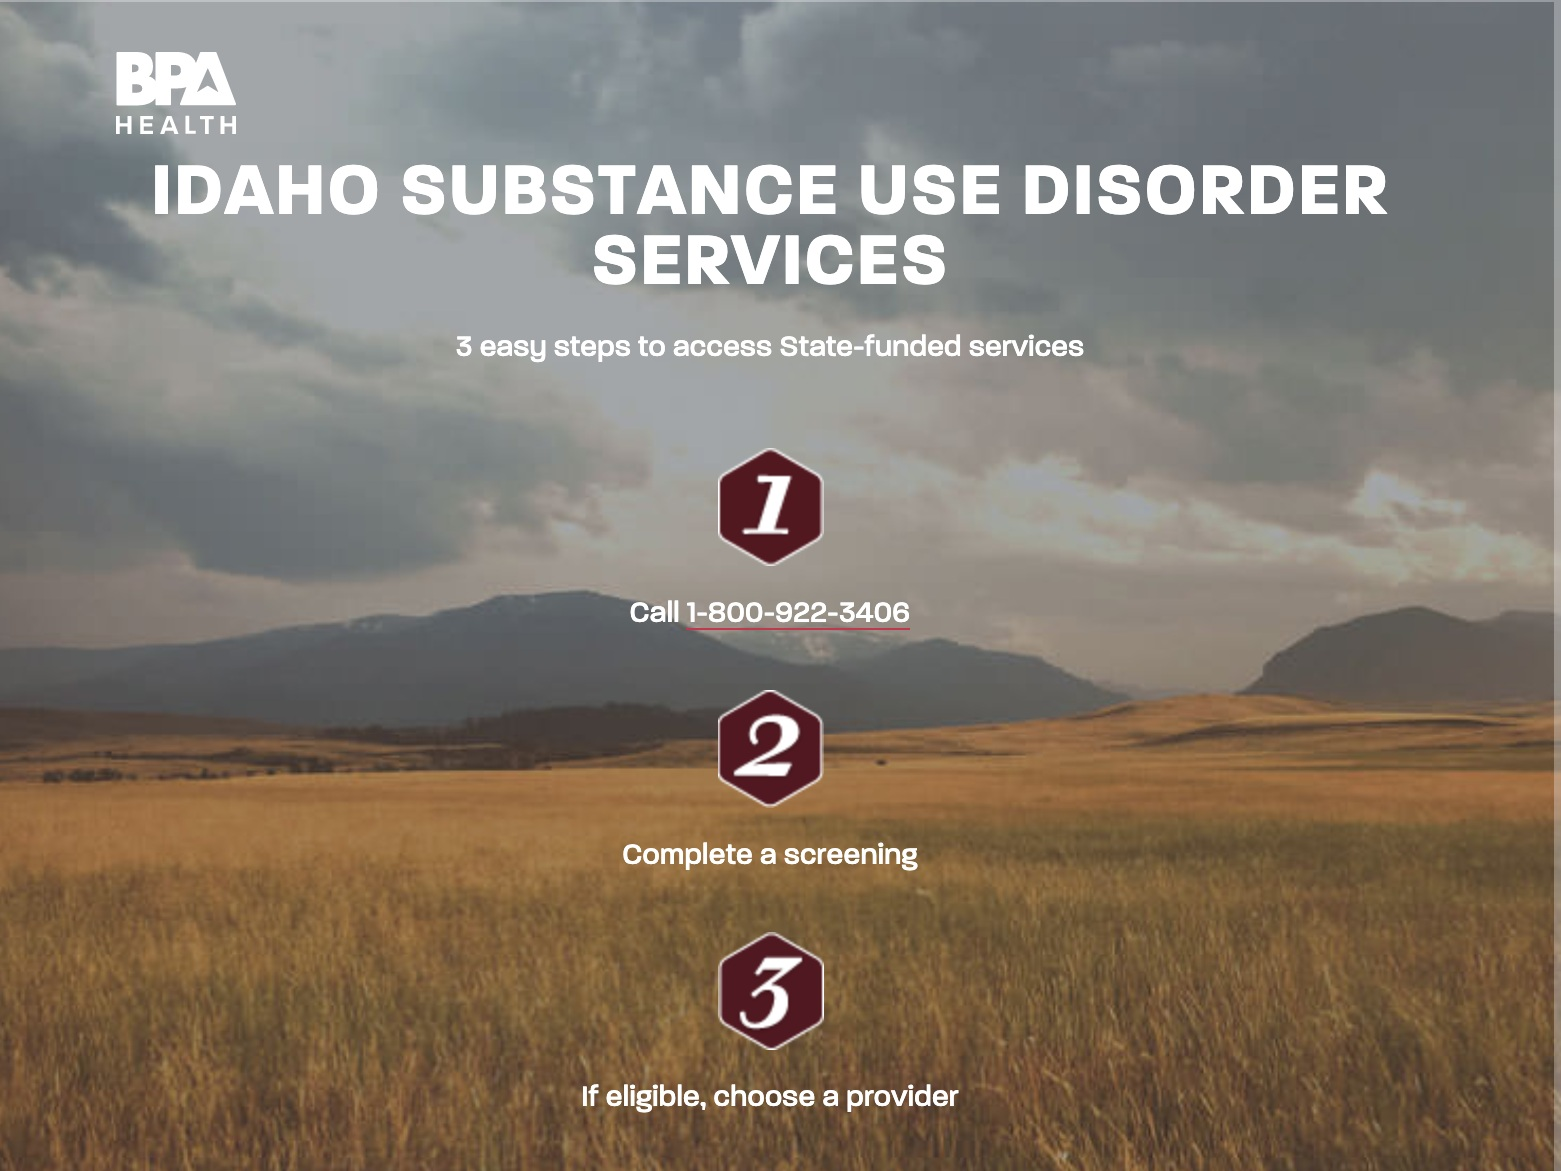 Substance use services - Information about state supported substance use services.